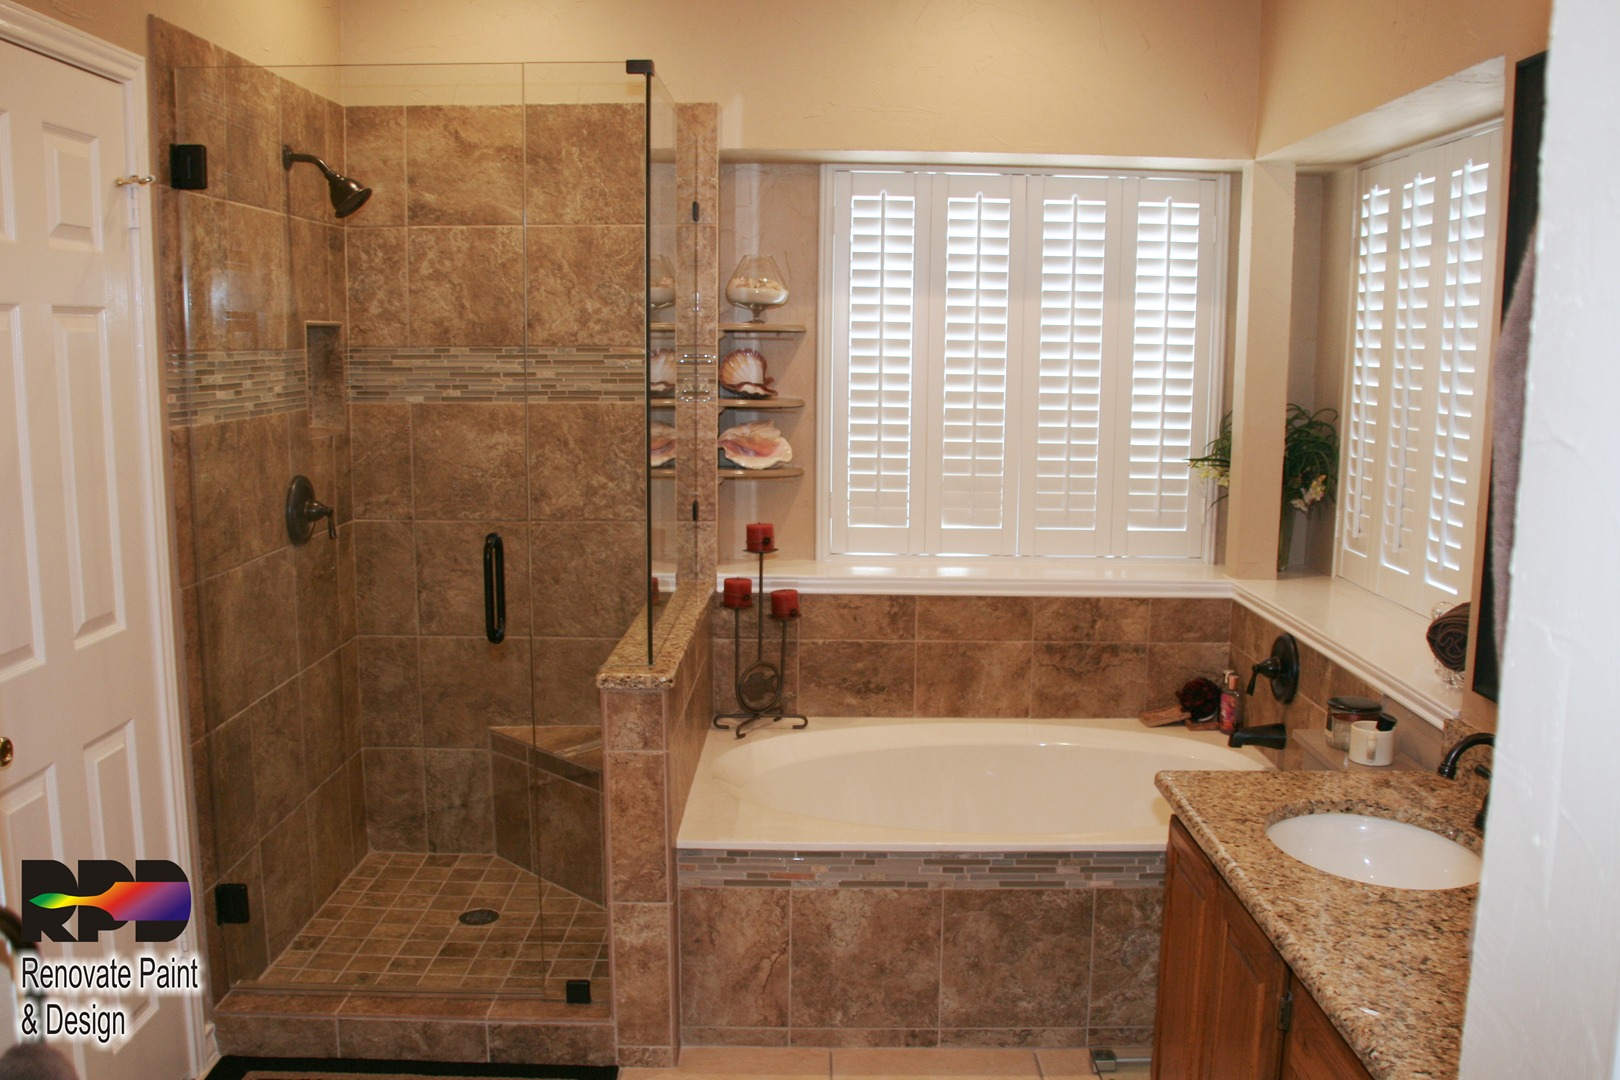 San Antonio Bathroom Remodeling Painting Custom Residential Home Bathroom Remodeling In San Antonio Texas Design Inspiration